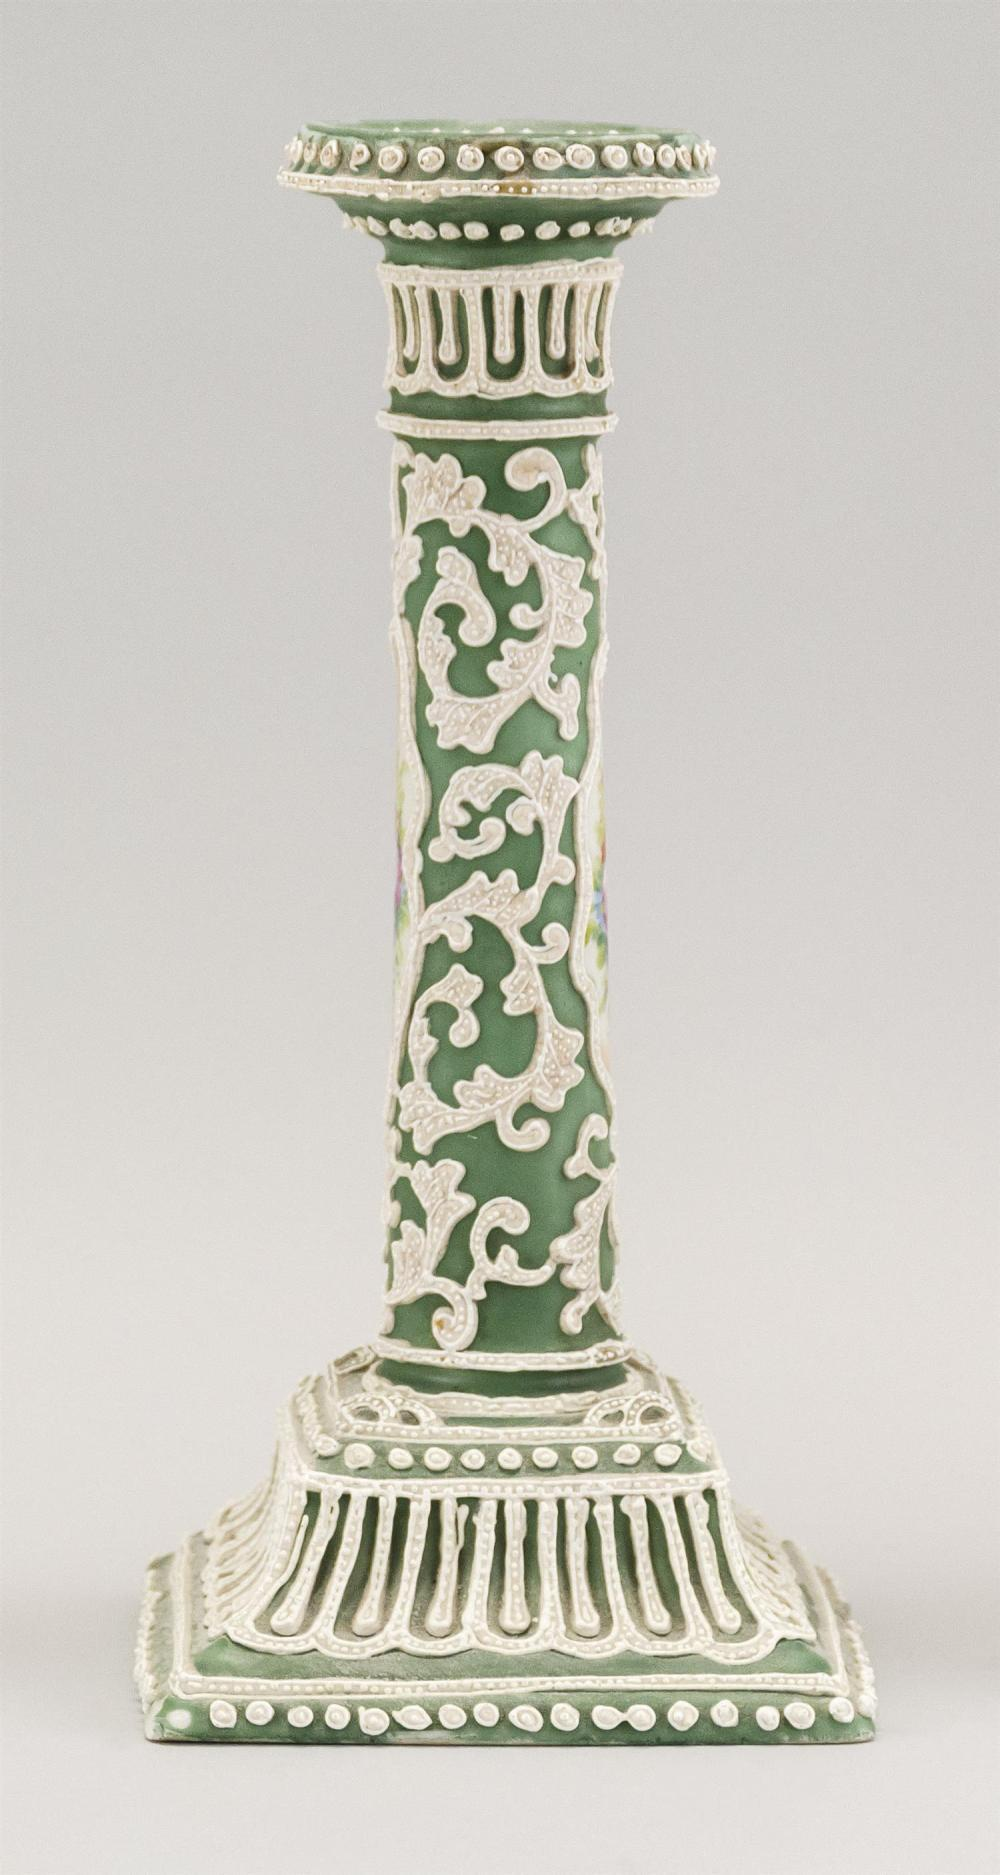 MORIAGE NIPPON PORCELAIN CANDLESTICK With floral cartouches on a green and white ground. Height 9.5